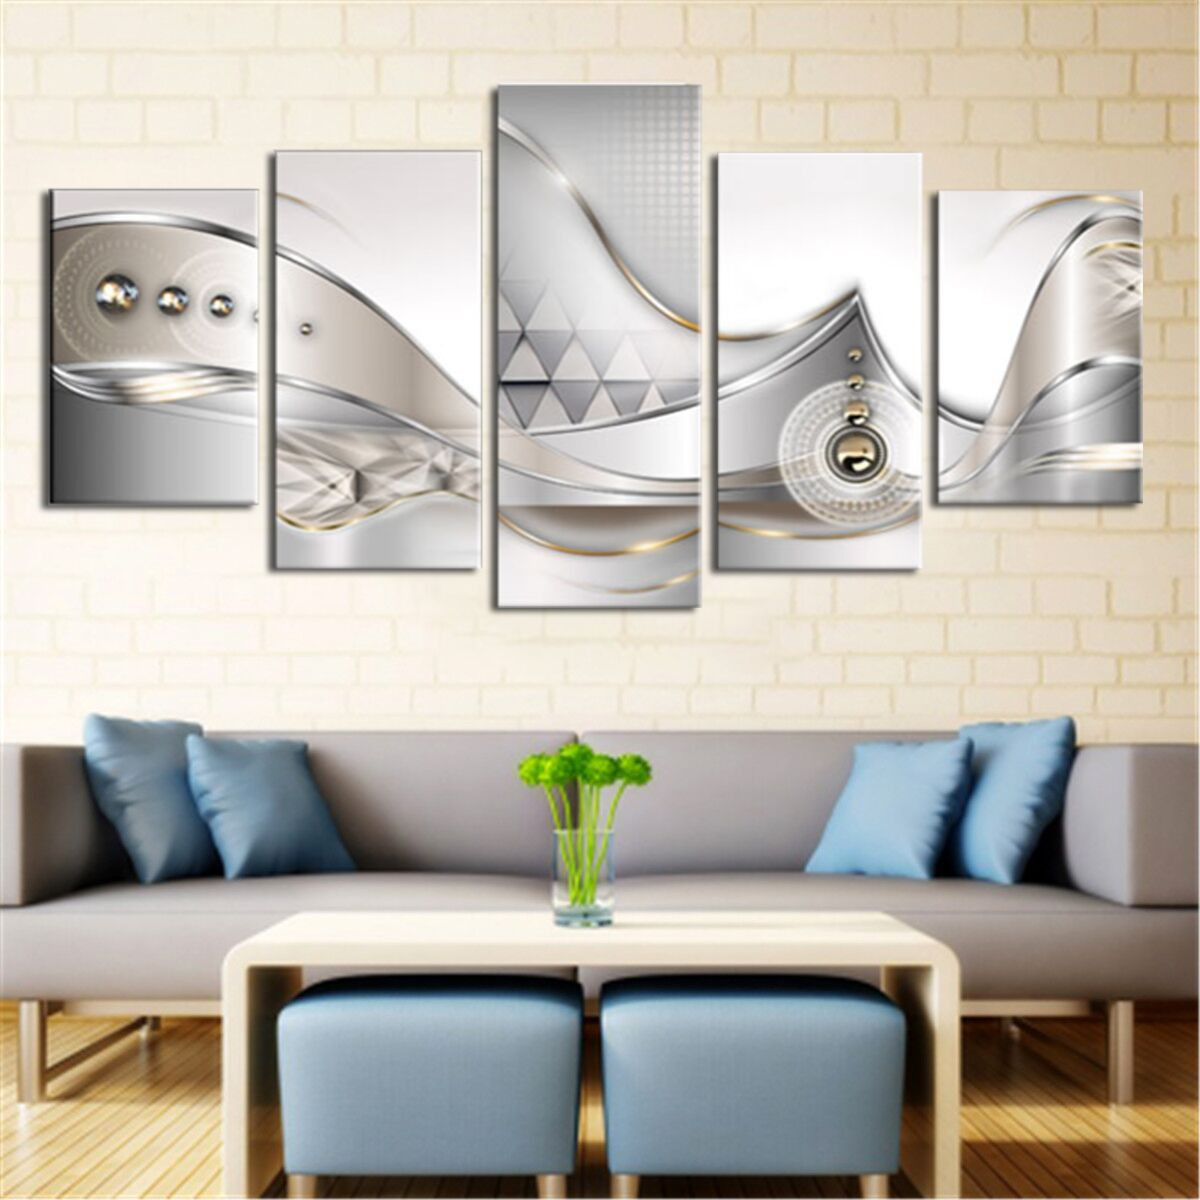 Unframed/Framed Giclee Canvas Prints 5 panels Modern Artwork Pictures to Photo Printed on & Unframed/Framed Giclee Canvas Prints 5 panels Modern Artwork ...